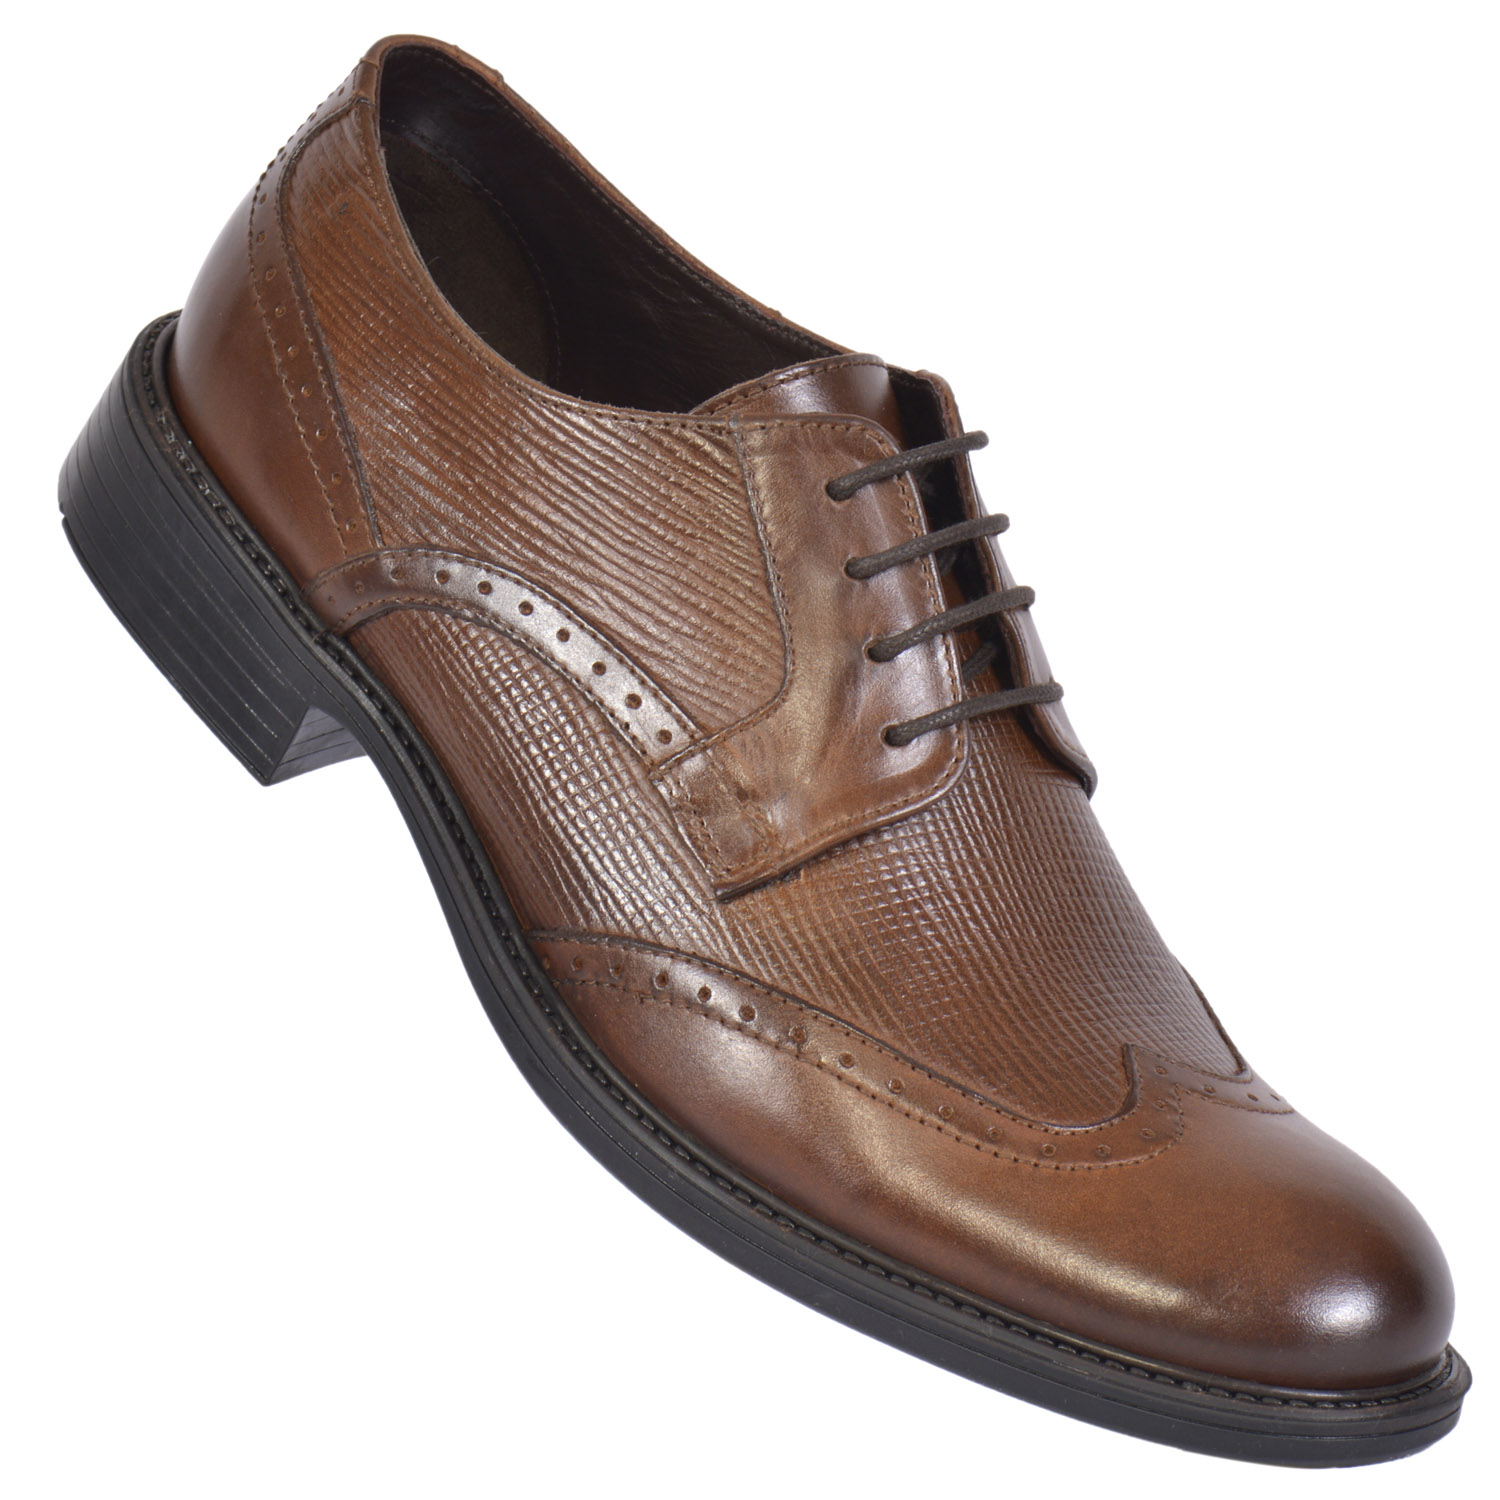 MASABIH | MASABIH Genuine Leather Men's Brown Lace-Up Formals